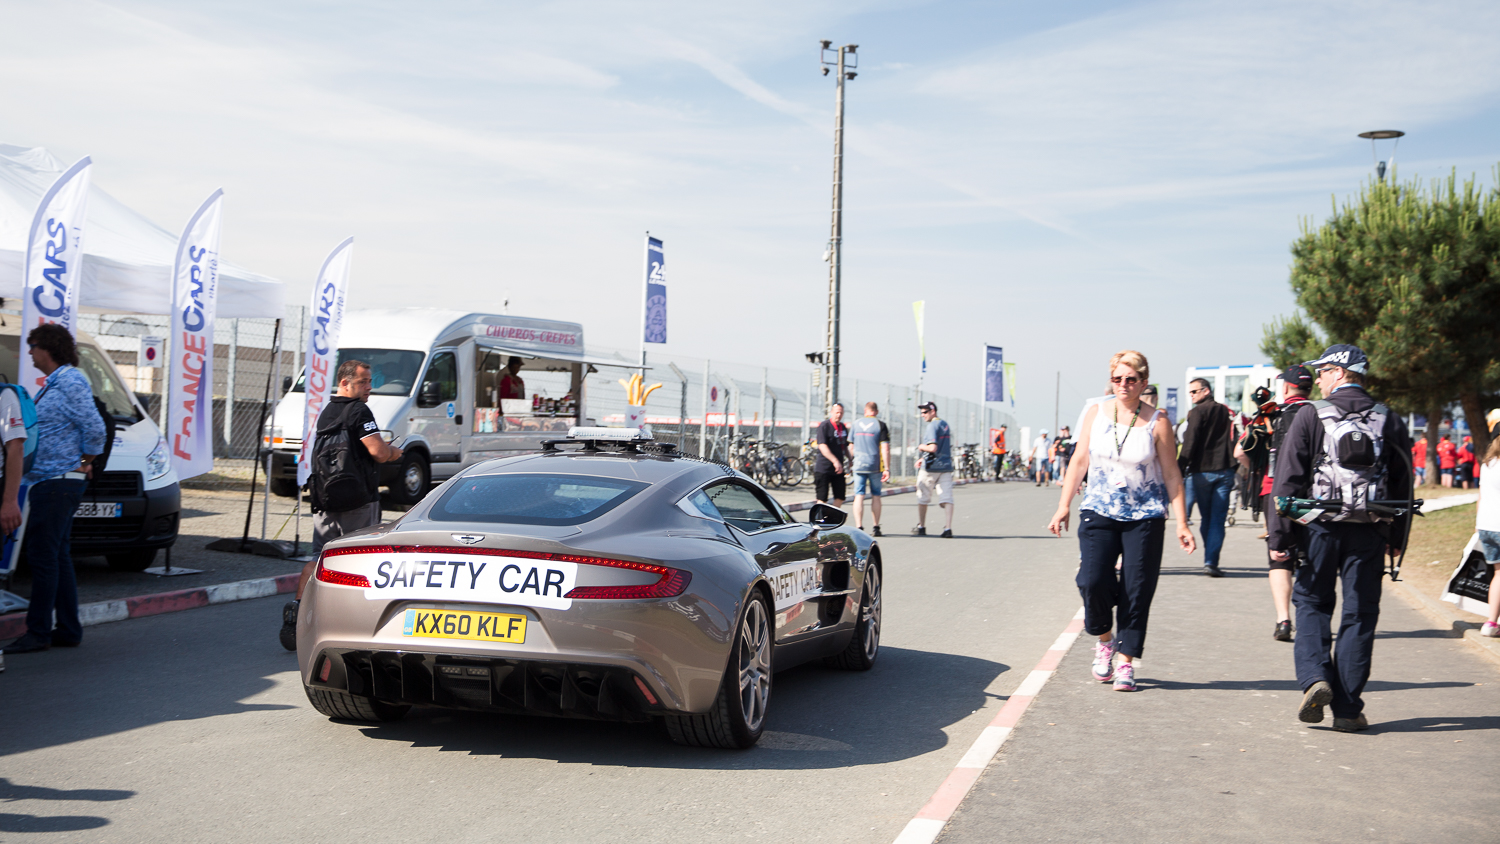 Only at Le Mans would you get an Aston Martin One-77 as a safety car...